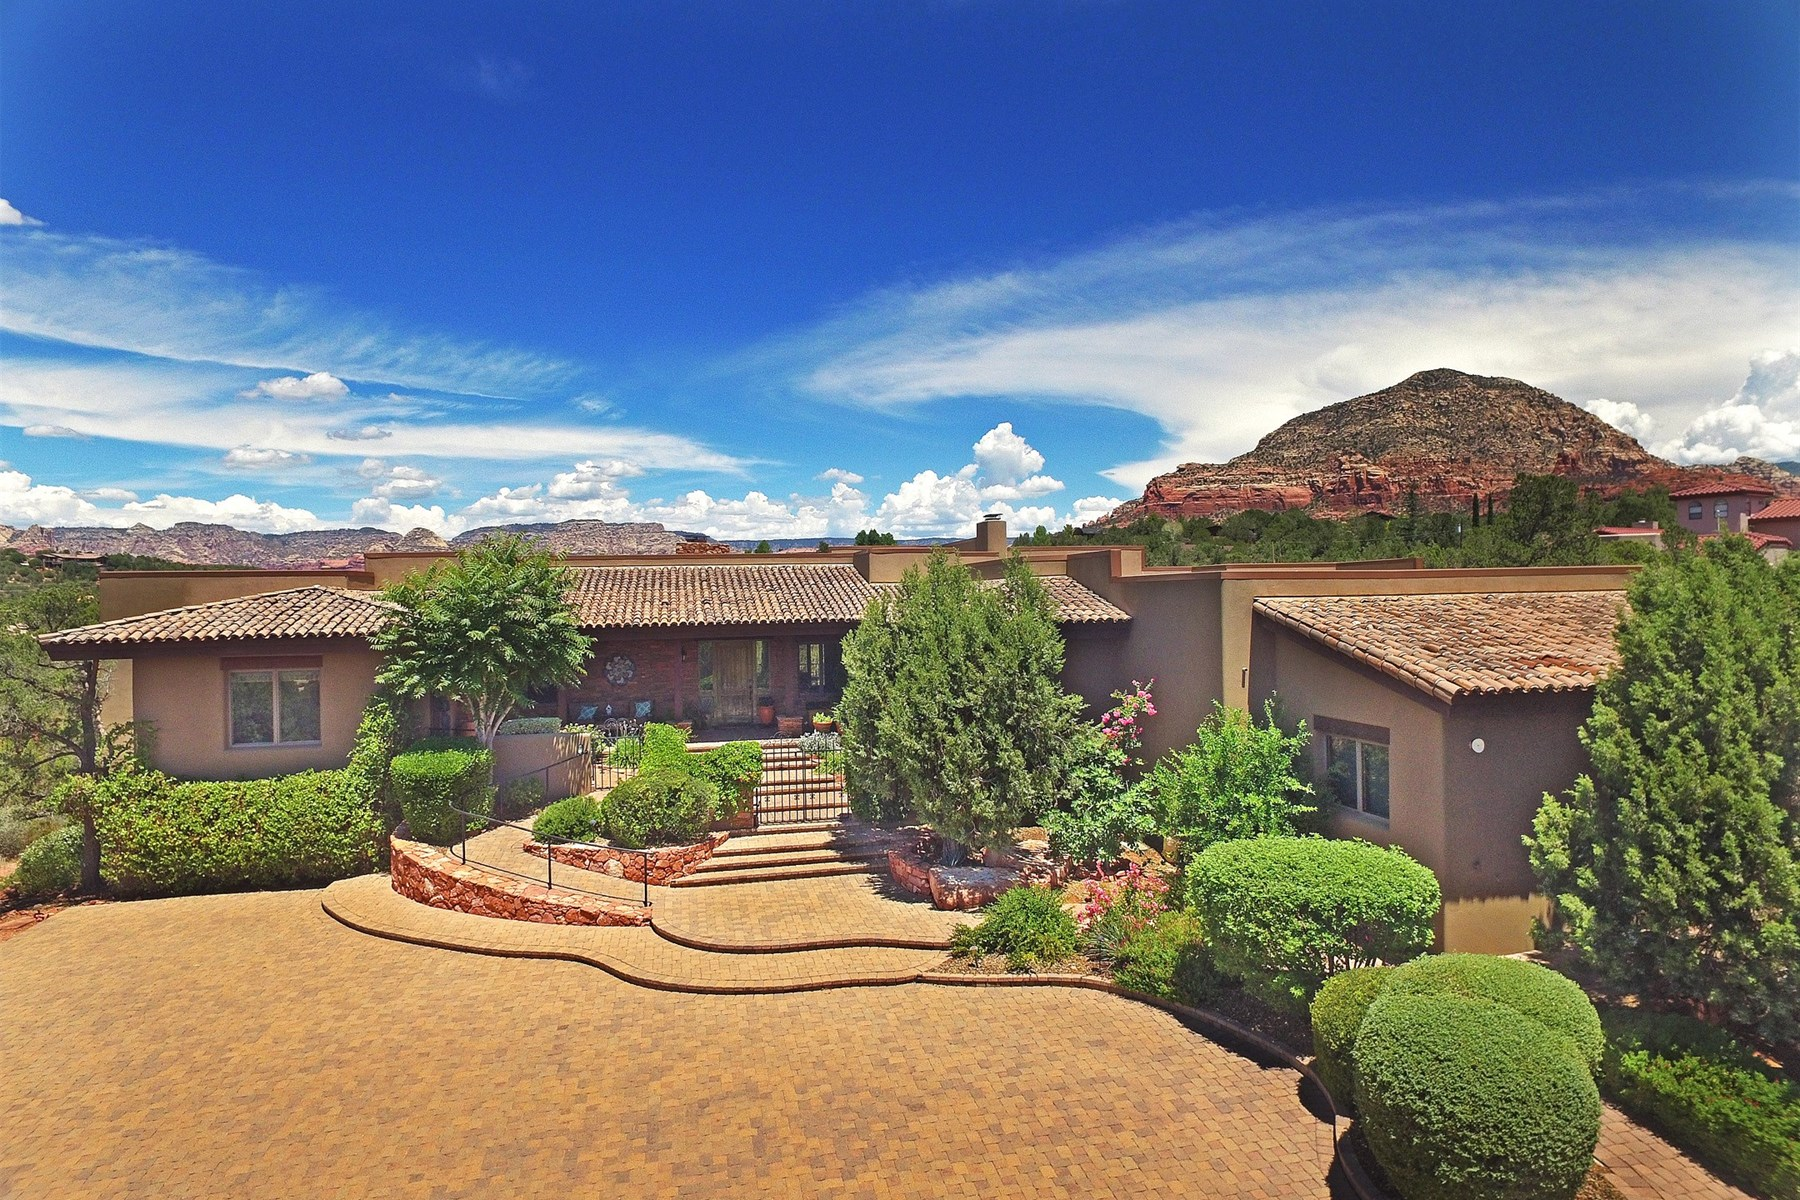 Villa per Vendita alle ore Gorgeous custom-designed luxury home 41 E Dove Wing Drive Sedona, Arizona, 86336 Stati Uniti